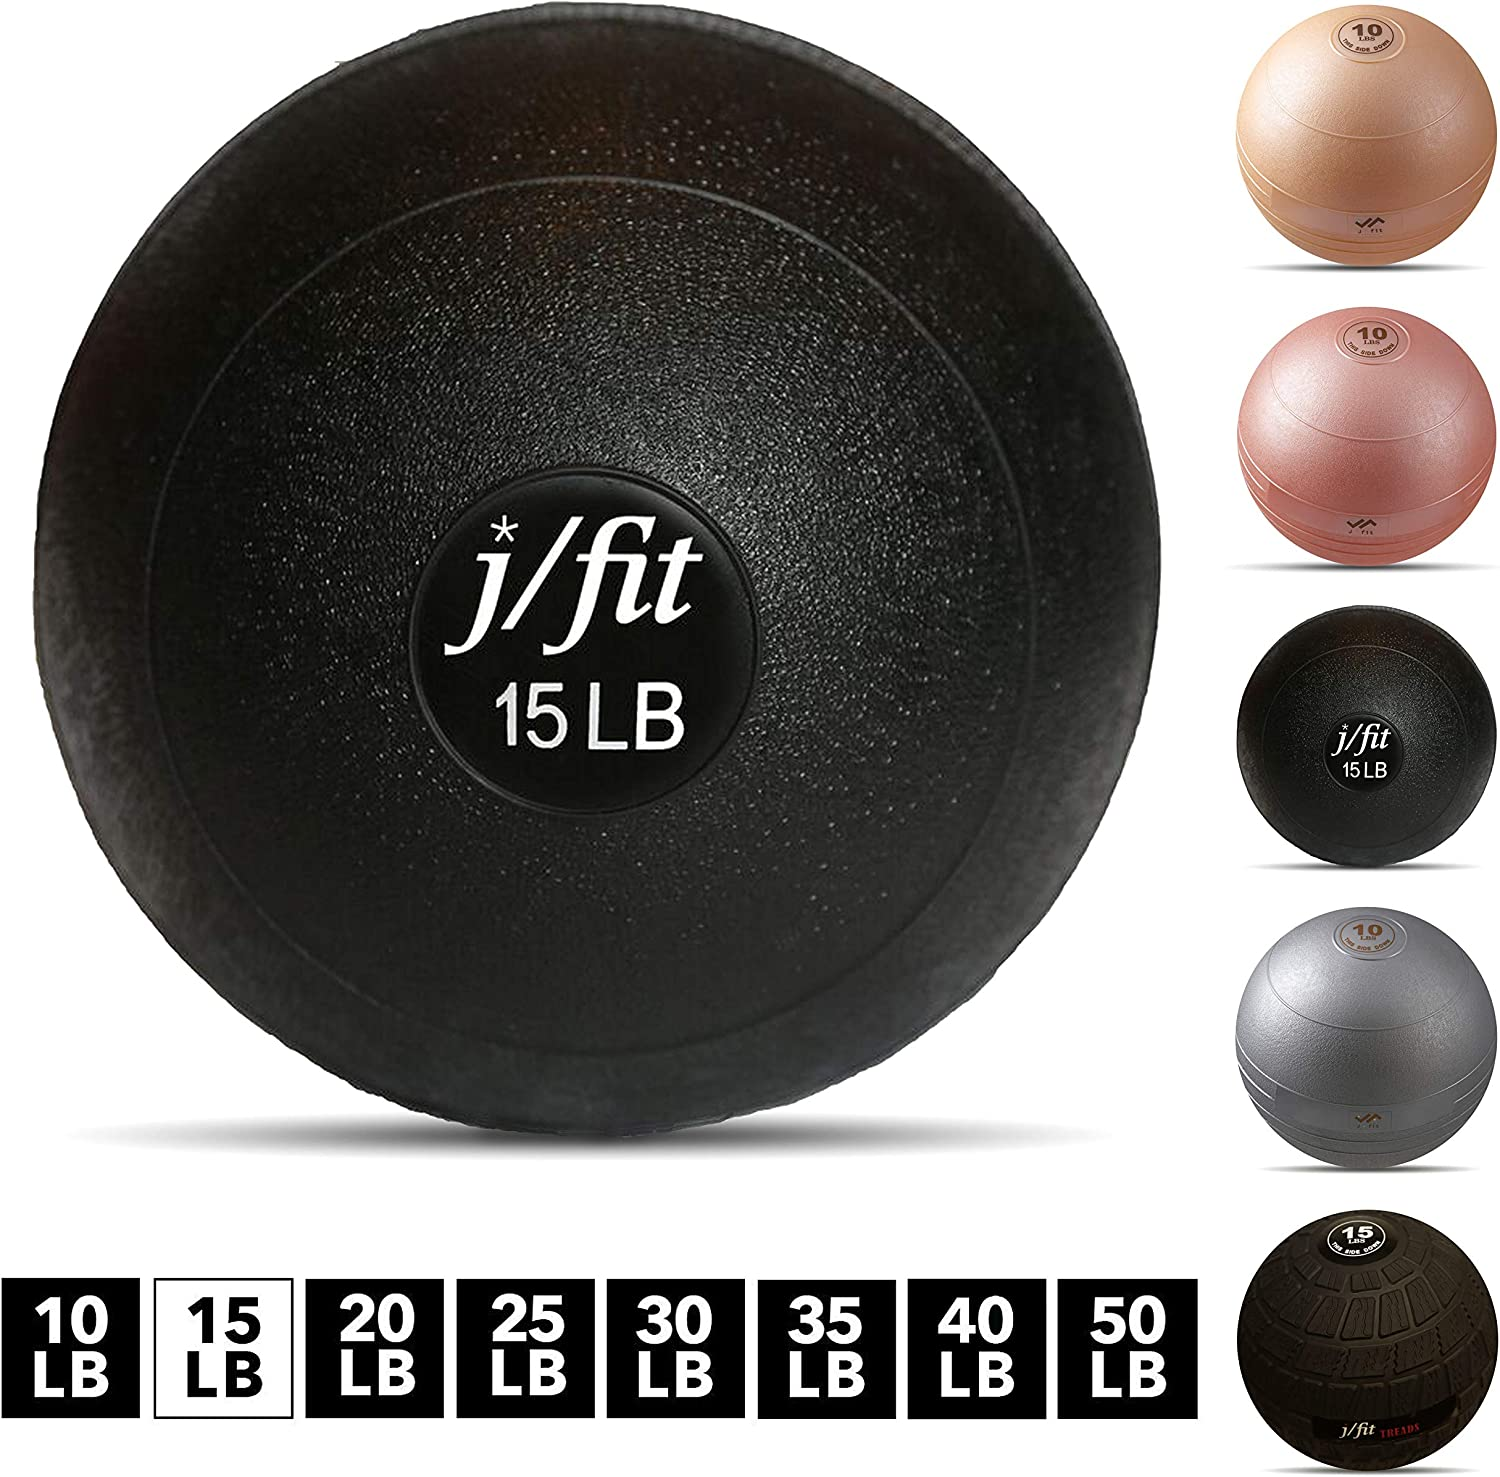 j/fit Dead Weight Slam Ball for Strength & Conditioning WODs, Plyometric and Core Training, and Cardio Workouts - 15 lb : Exercise Balls : Sports & Outdoors